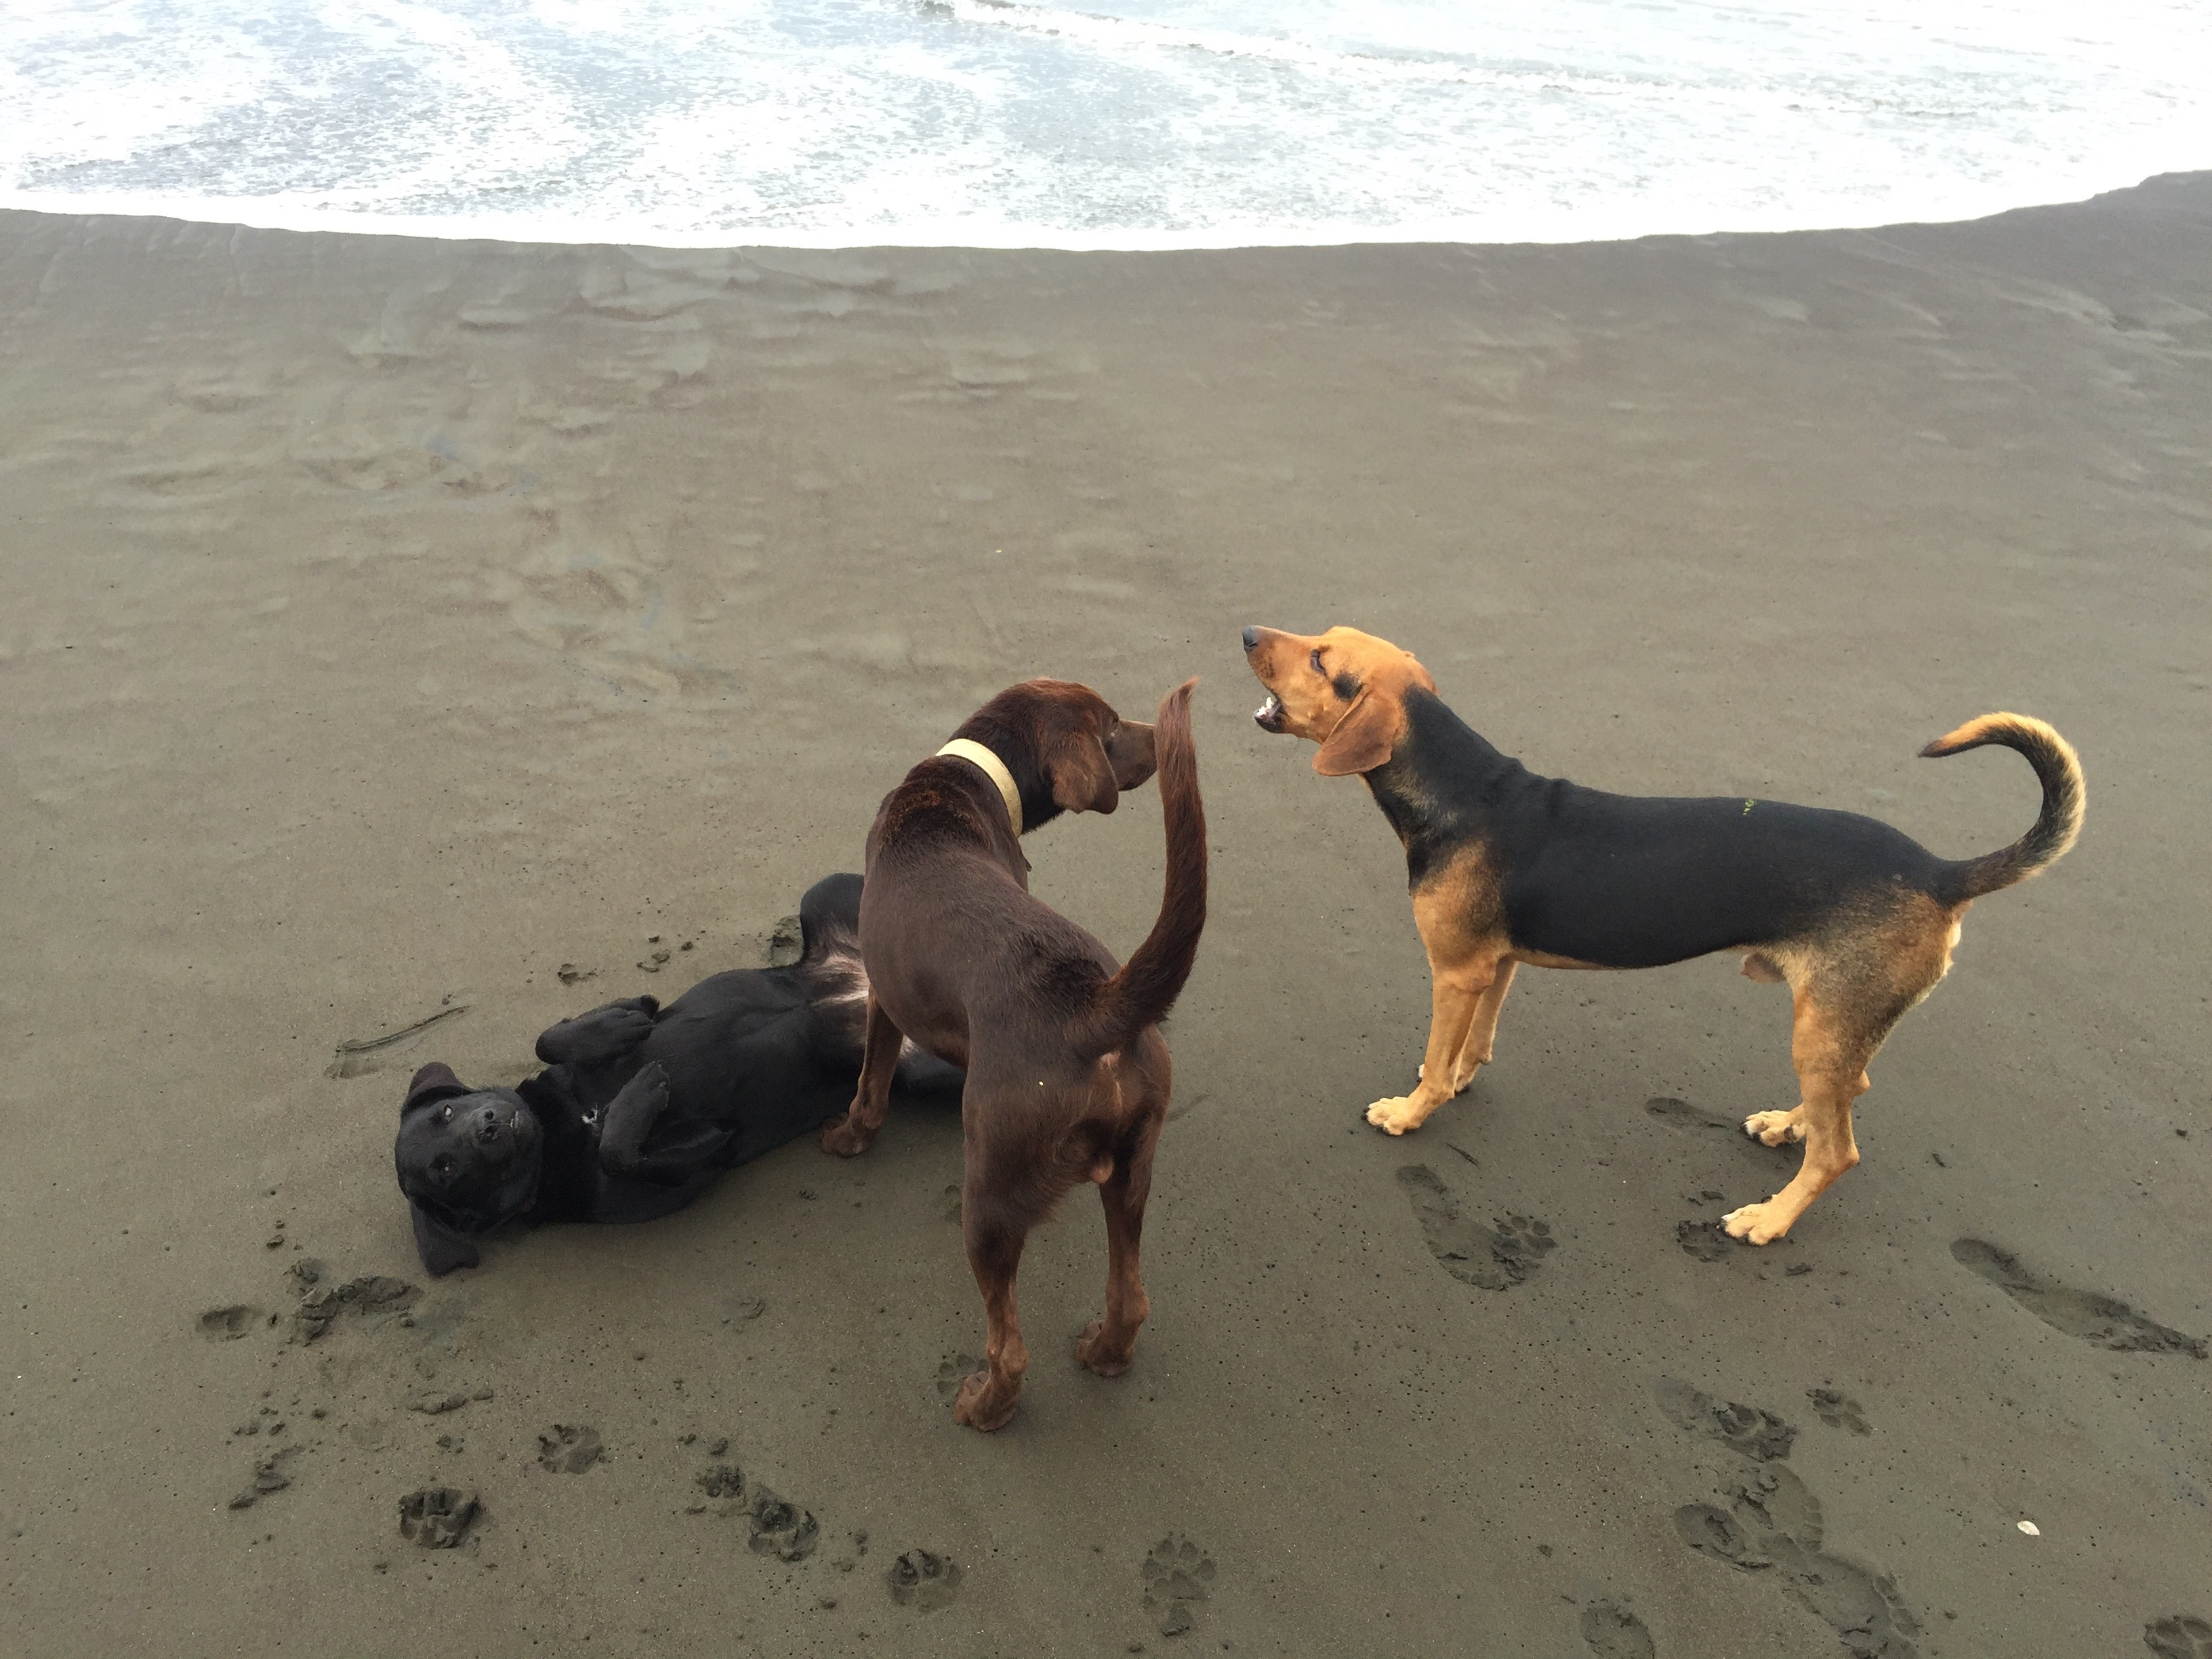 Three stray dogs play on the beach at Playa Avellanas in Costa Rica.